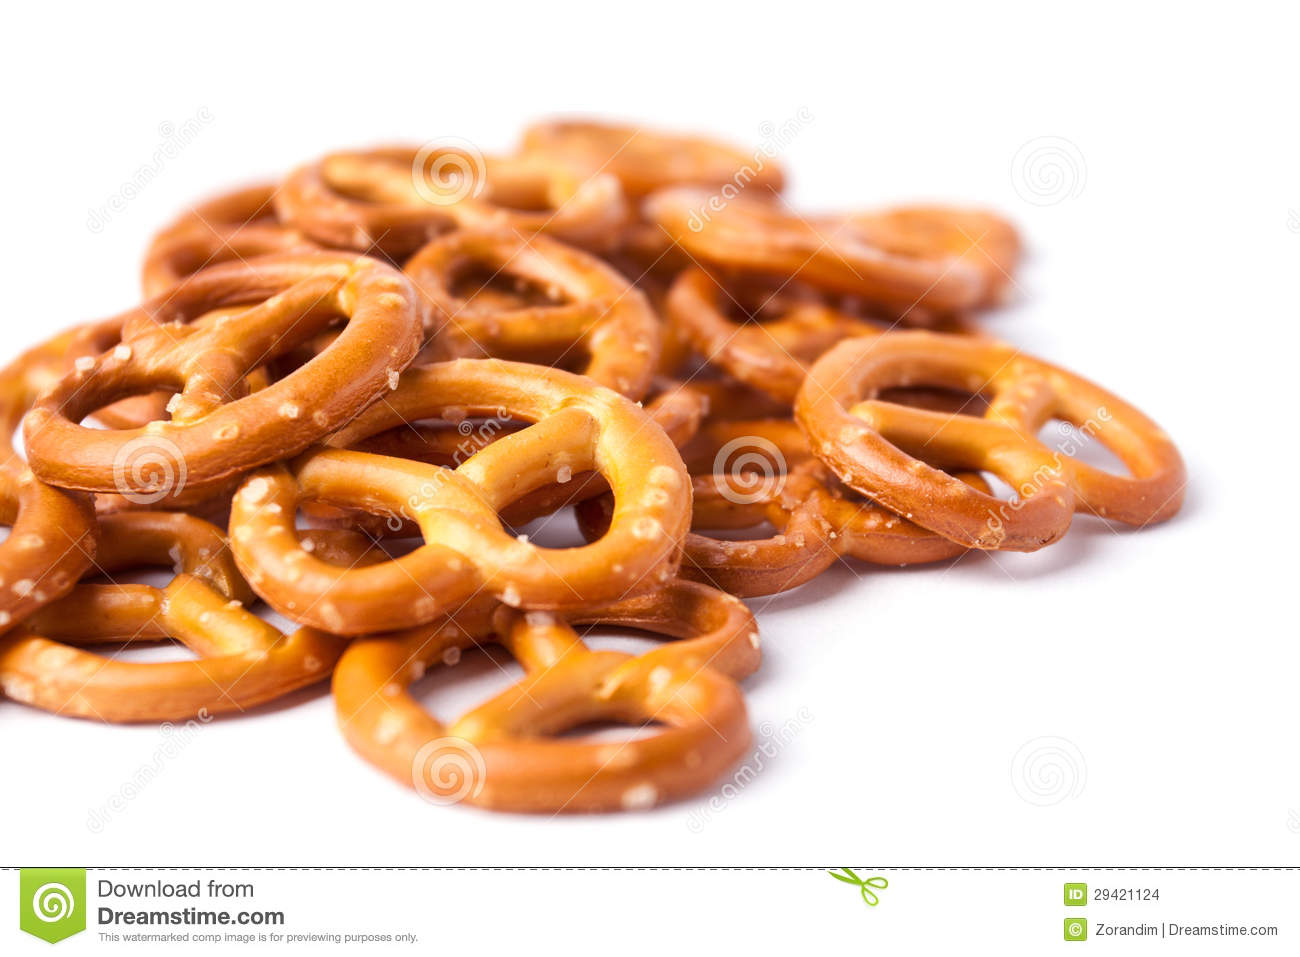 Cookies pretzels on a white background